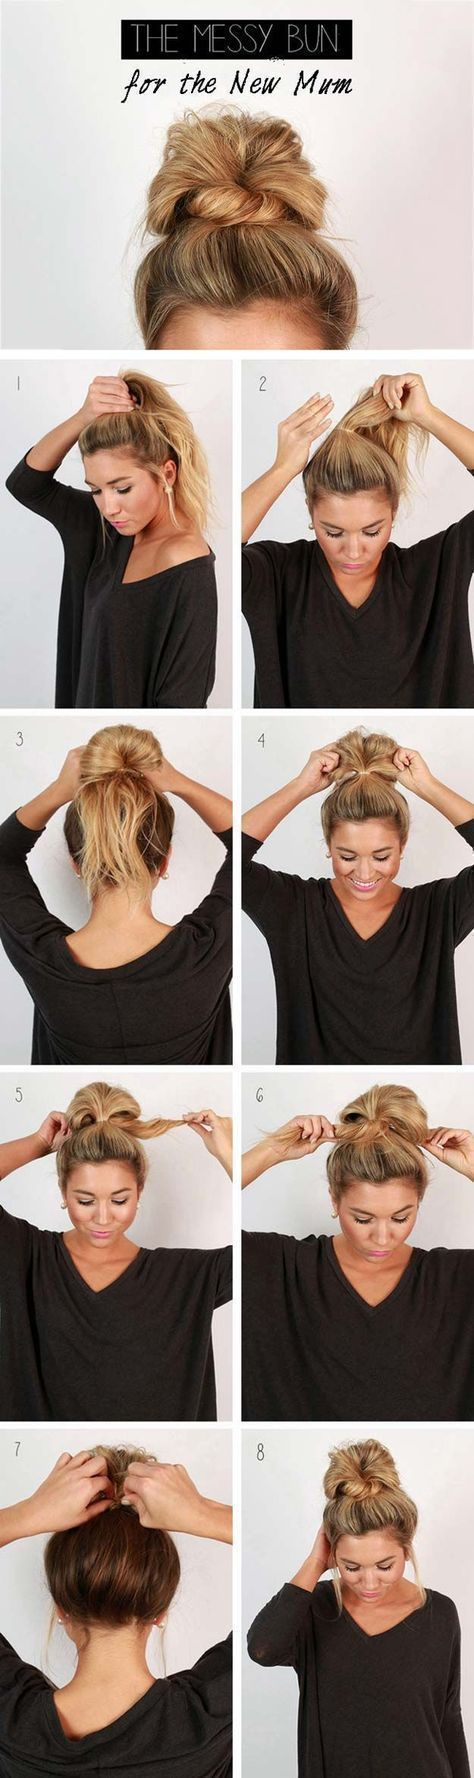 Cool and Easy DIY Hairstyles - Messy Bun - Quick and Easy Ideas for Back to School Styles for Medium, Short and Long Hair - Fun Tips and Best Step by Step Tutorials for Teens, Prom, Weddings, Special Occasions and Work. Up dos, Braids, Top Knots and Buns, #diyhairstylesforprom #easyhairstyles #messyhairstyleseasy #messyhairstylesforlonghaor #weddinghairstyletips #weddinghairstyles